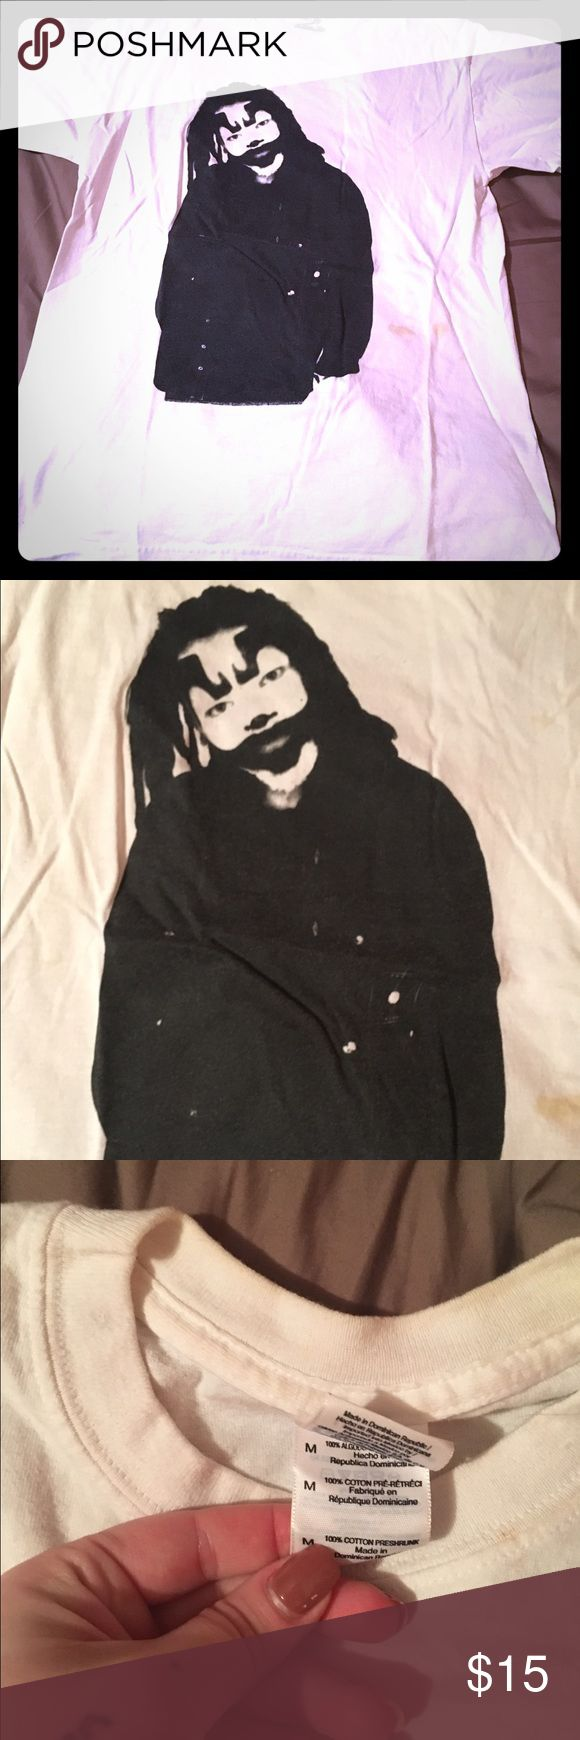 Shaggy 2 dope icp concert t shirt Insane clown posse icp shaggy 2 dope white concert t shirt size M has been worn and has smoke stains on the front bottom as pictured, purchased from hatchetgear.com hatchetgear Tops